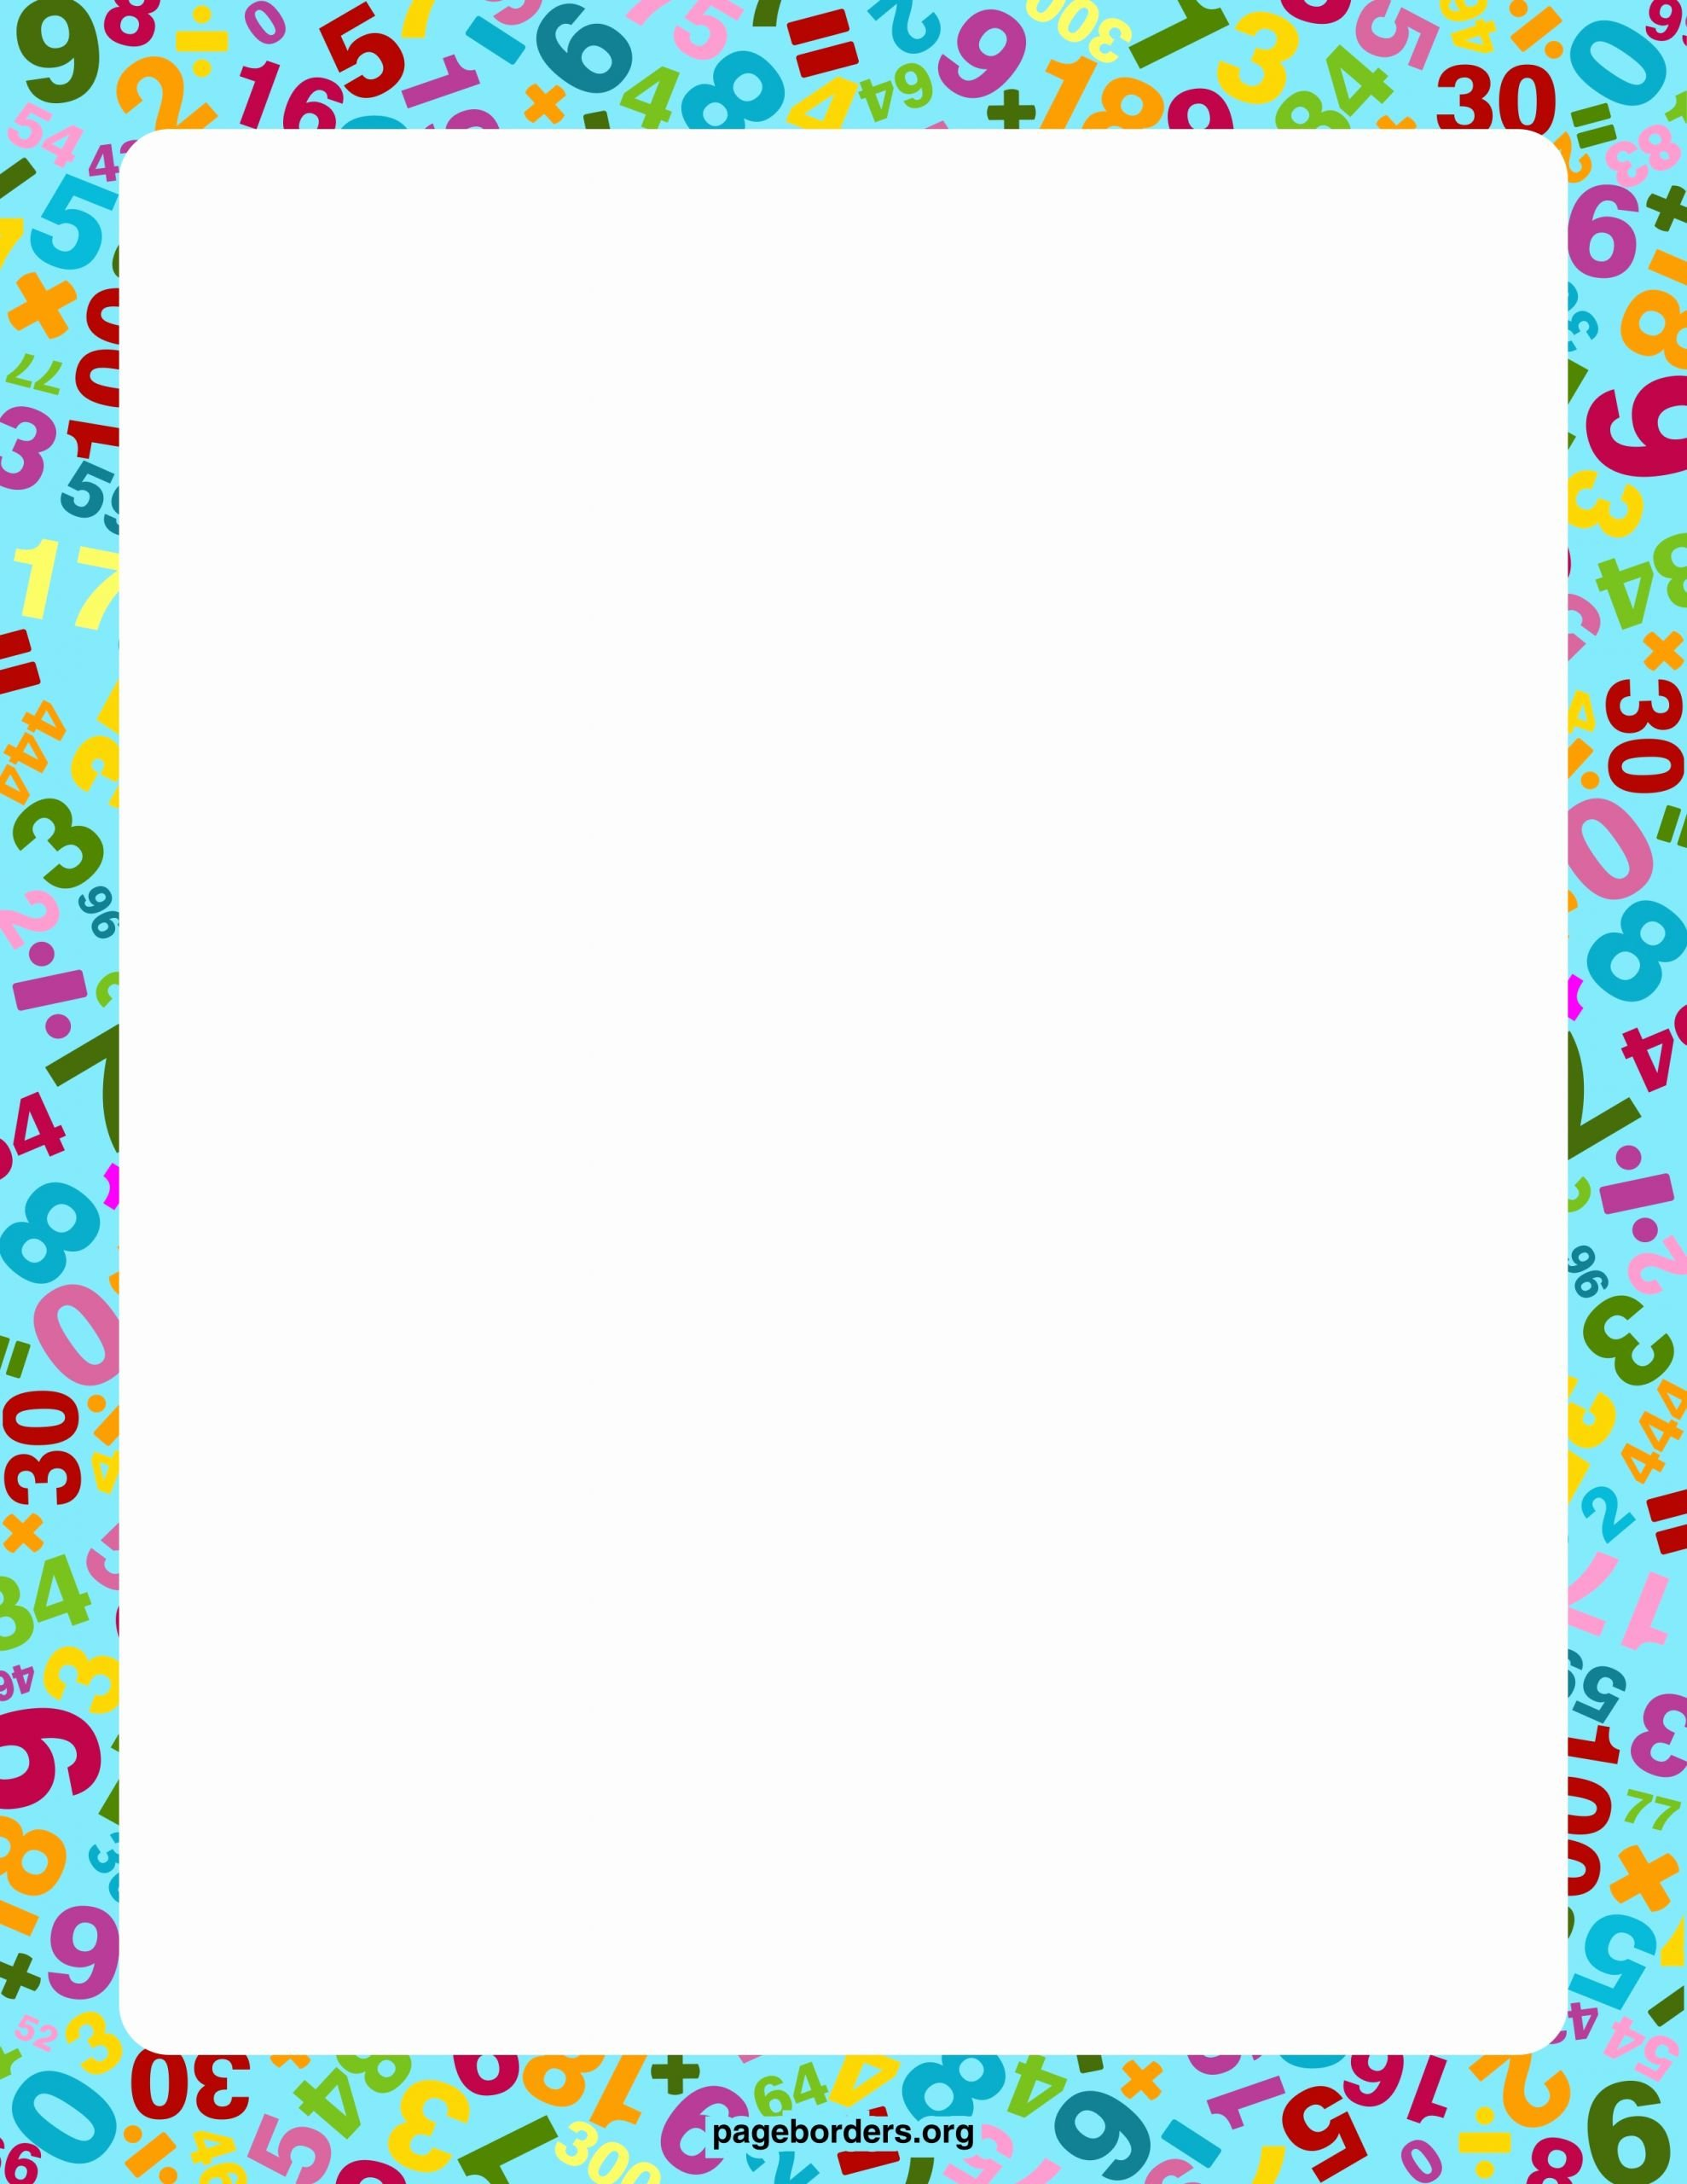 Math Borders for Word Lovely Math Borders for Microsoft Word Download Flowersheet